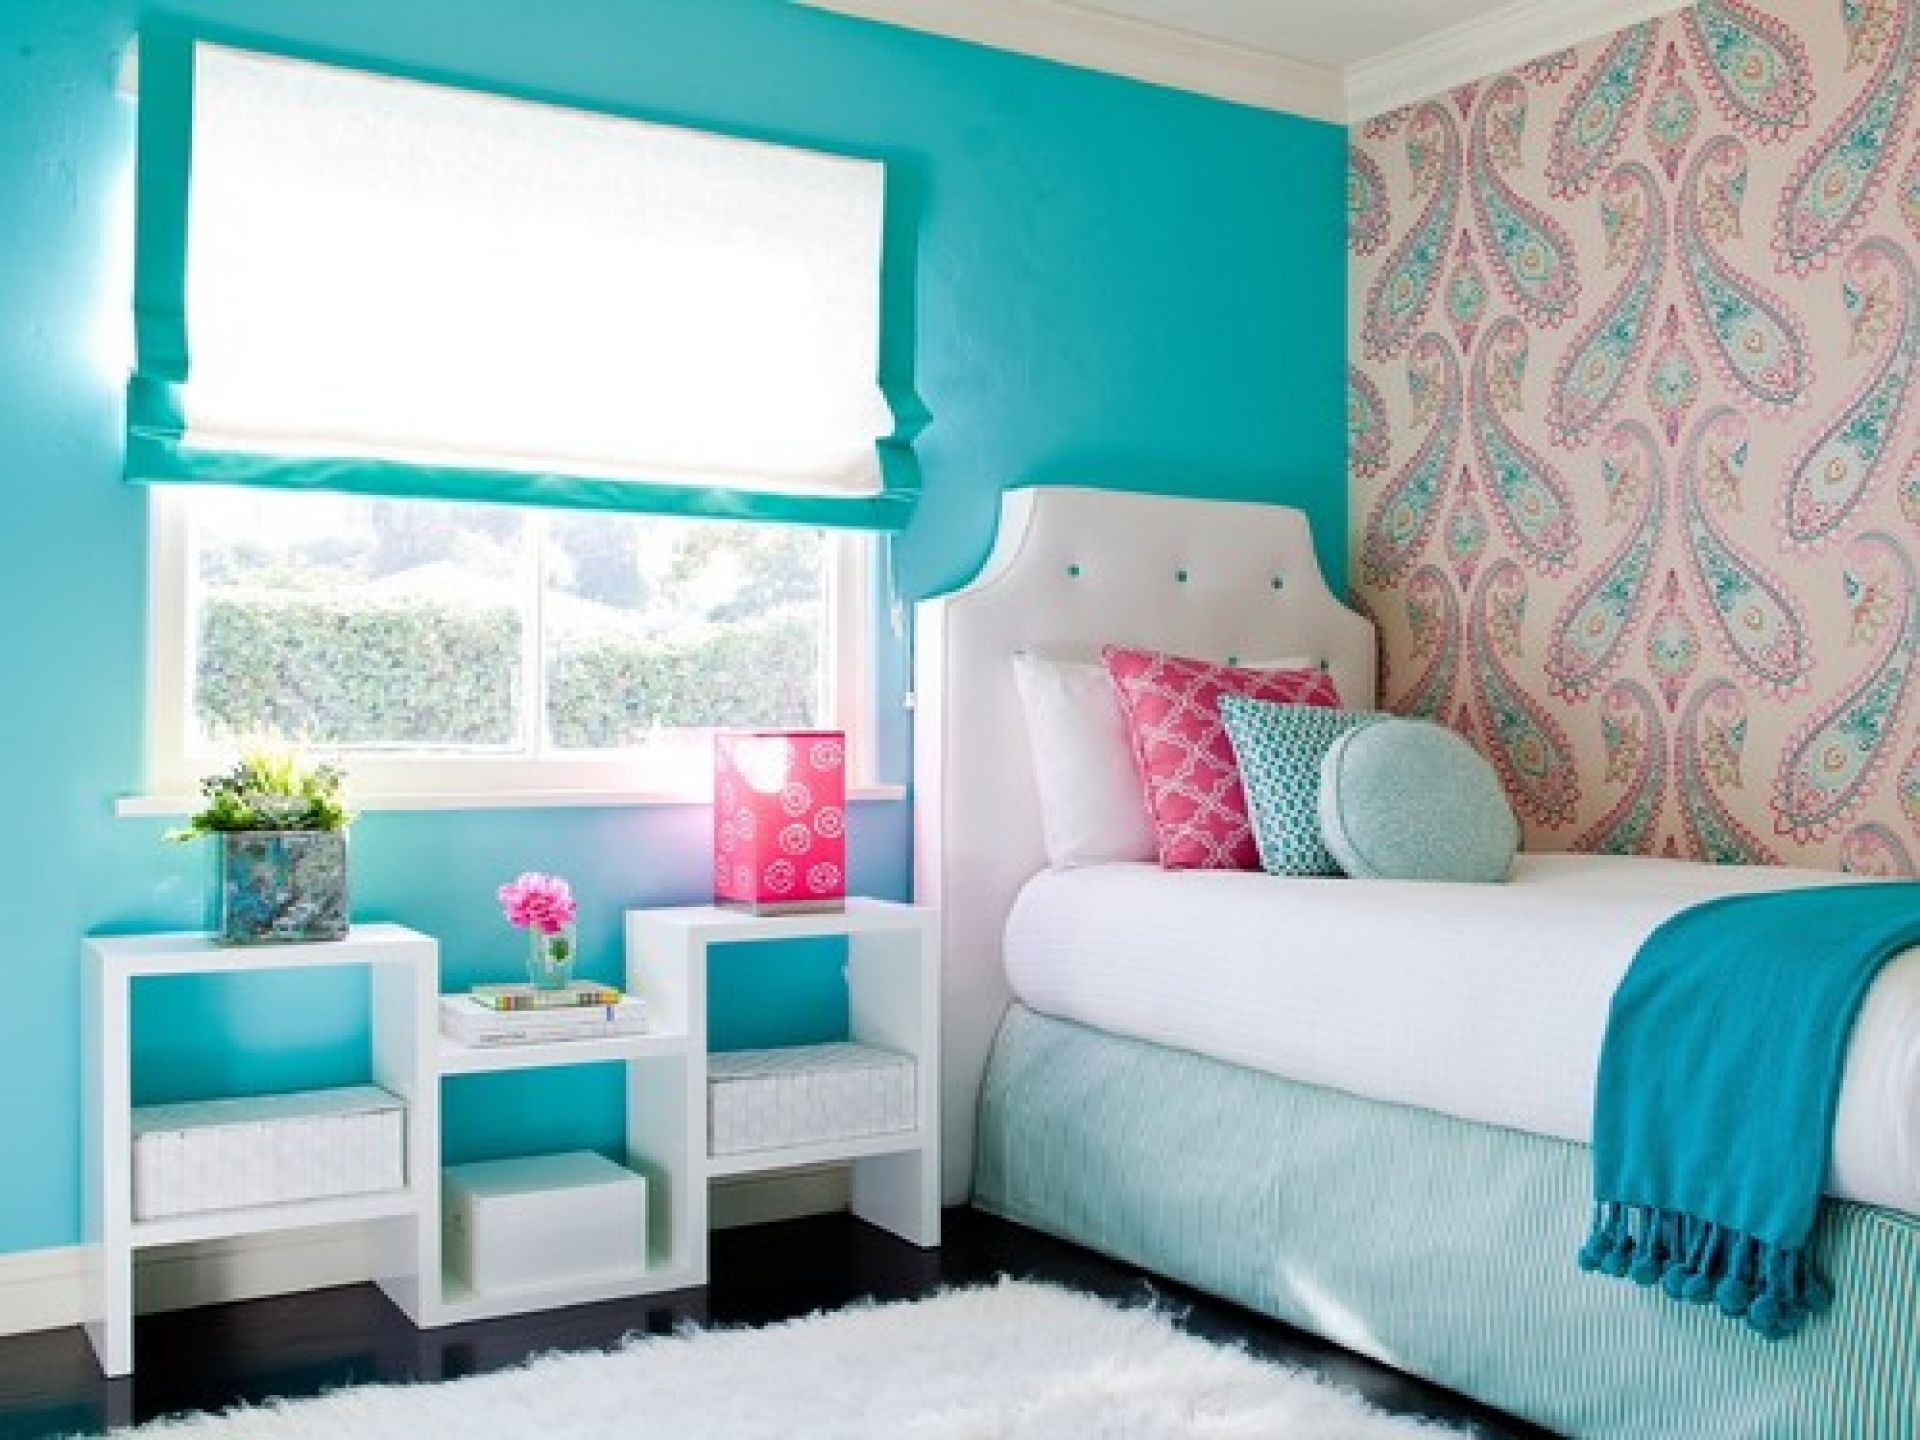 Simple design comfy room colors teenage girl bedroom wall for Paint color ideas for bedroom